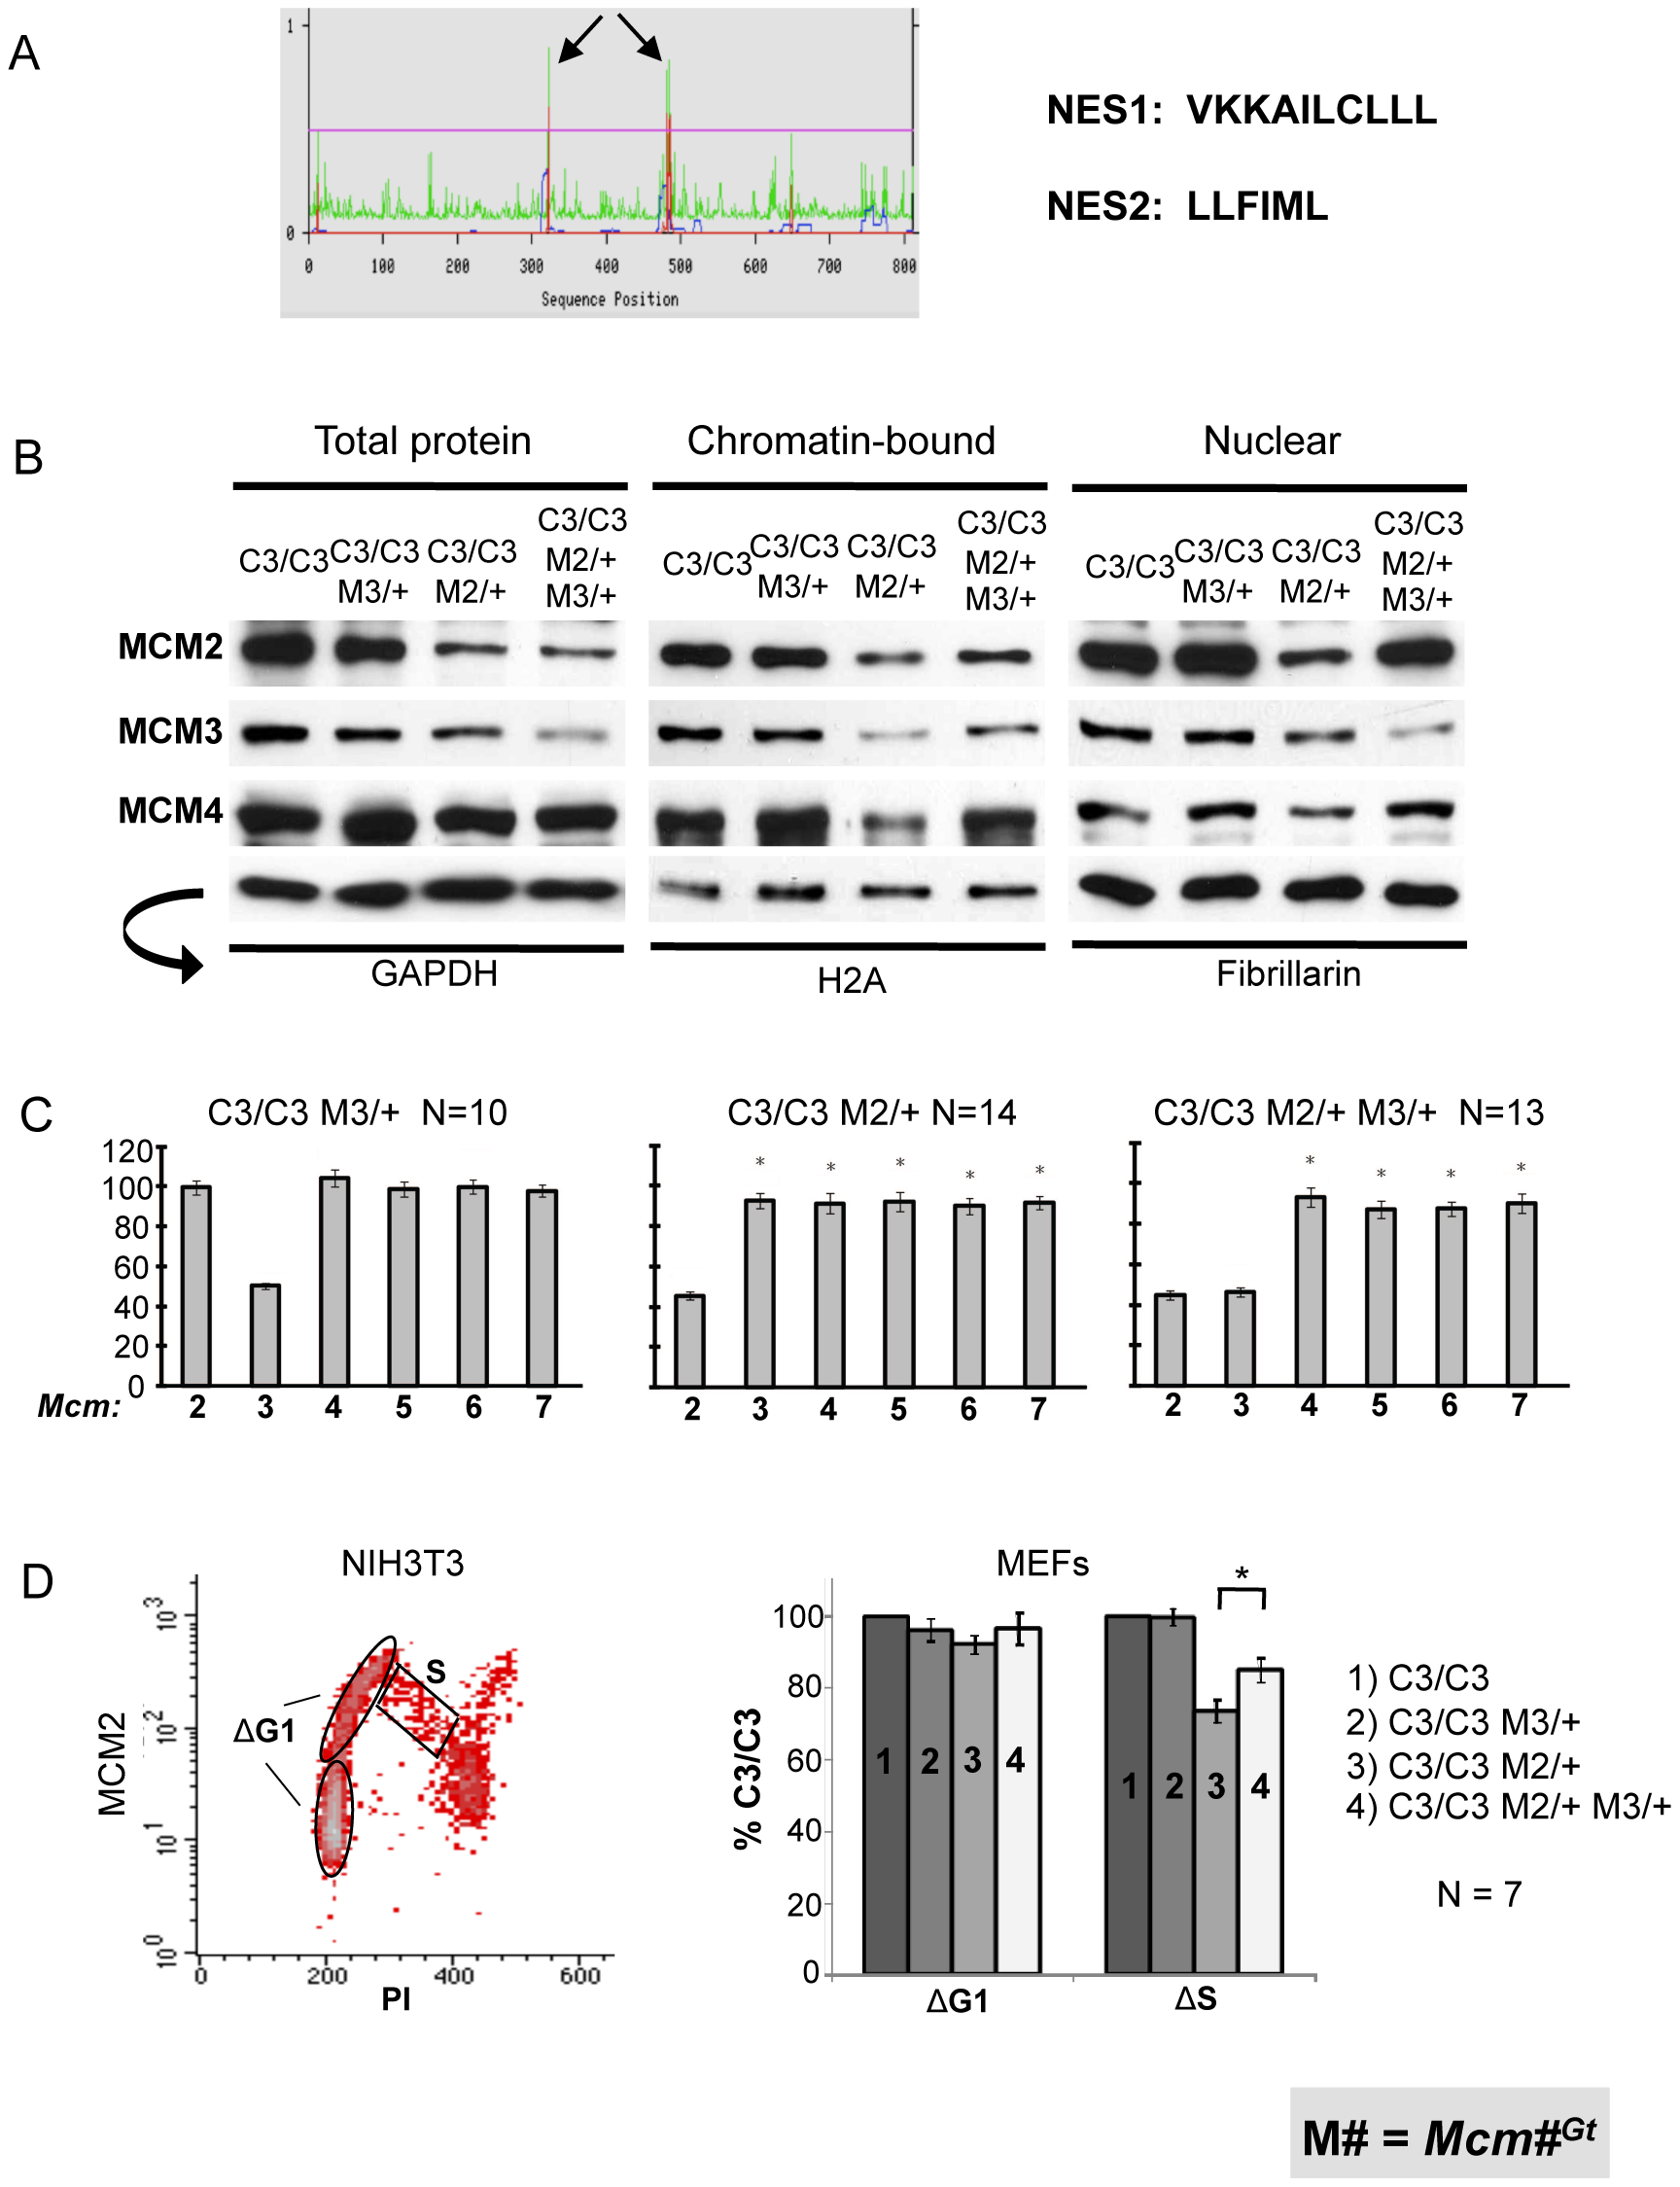 MCM3 regulates nuclear and chromatin-bound MCM levels.